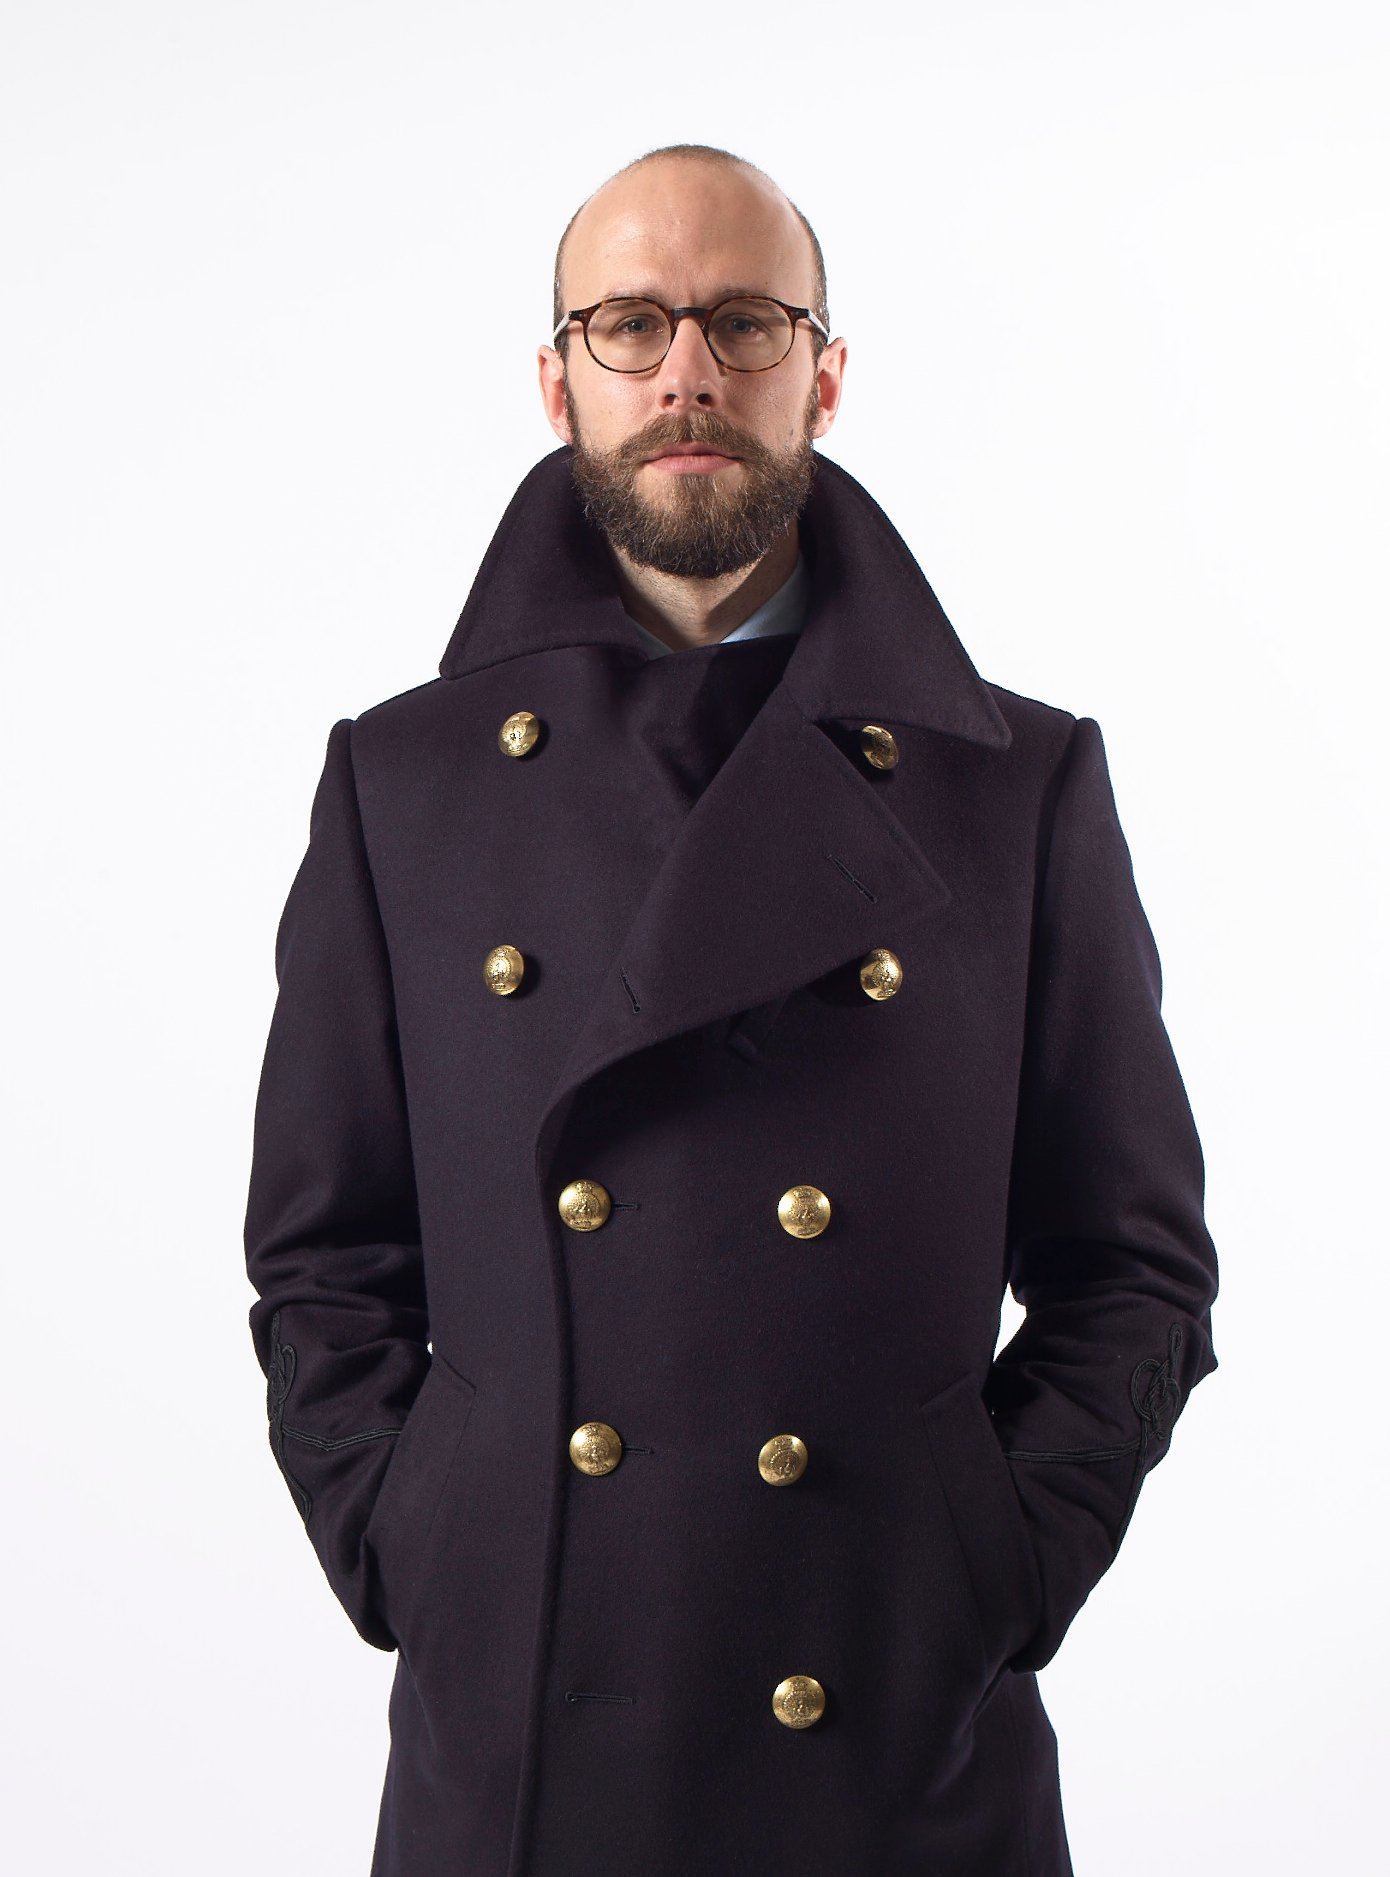 The bespoke pea coat – Part 5 – Permanent Style